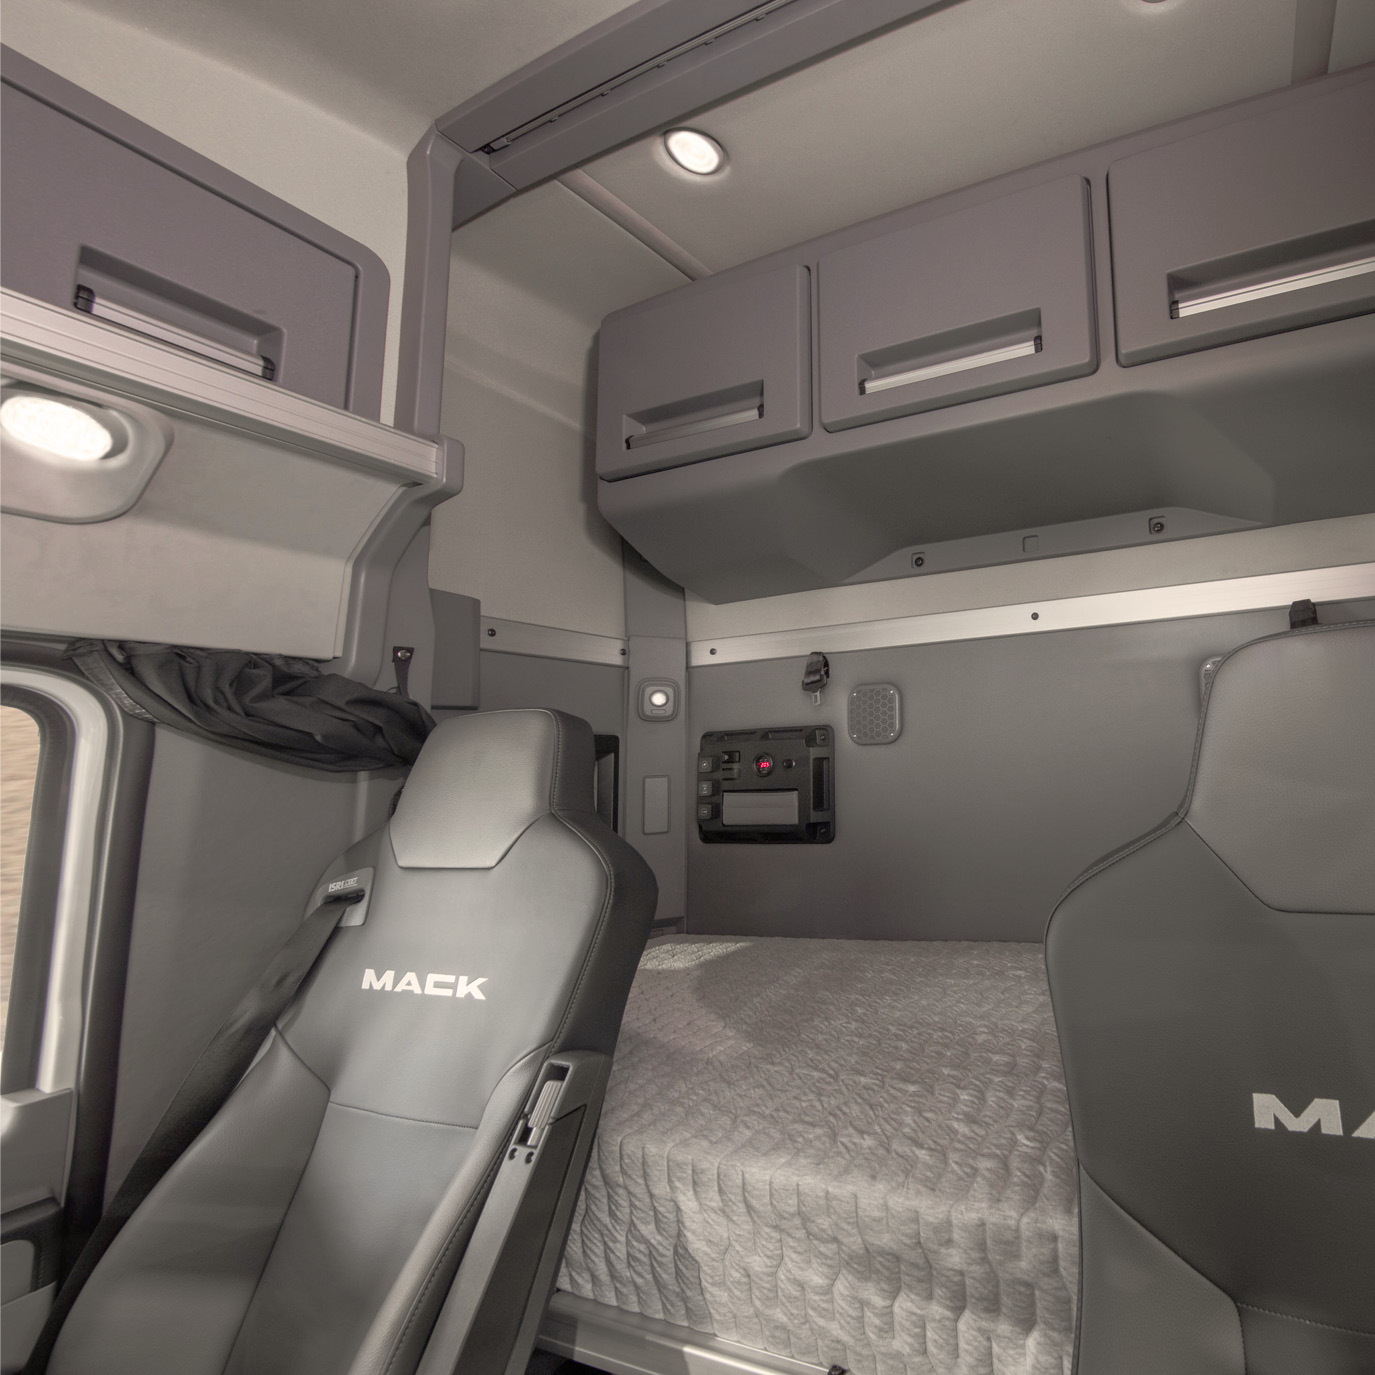 """Driver view of the Anthem 36"""" Stand Up Sleeper interior environment with sleeper bunk.."""